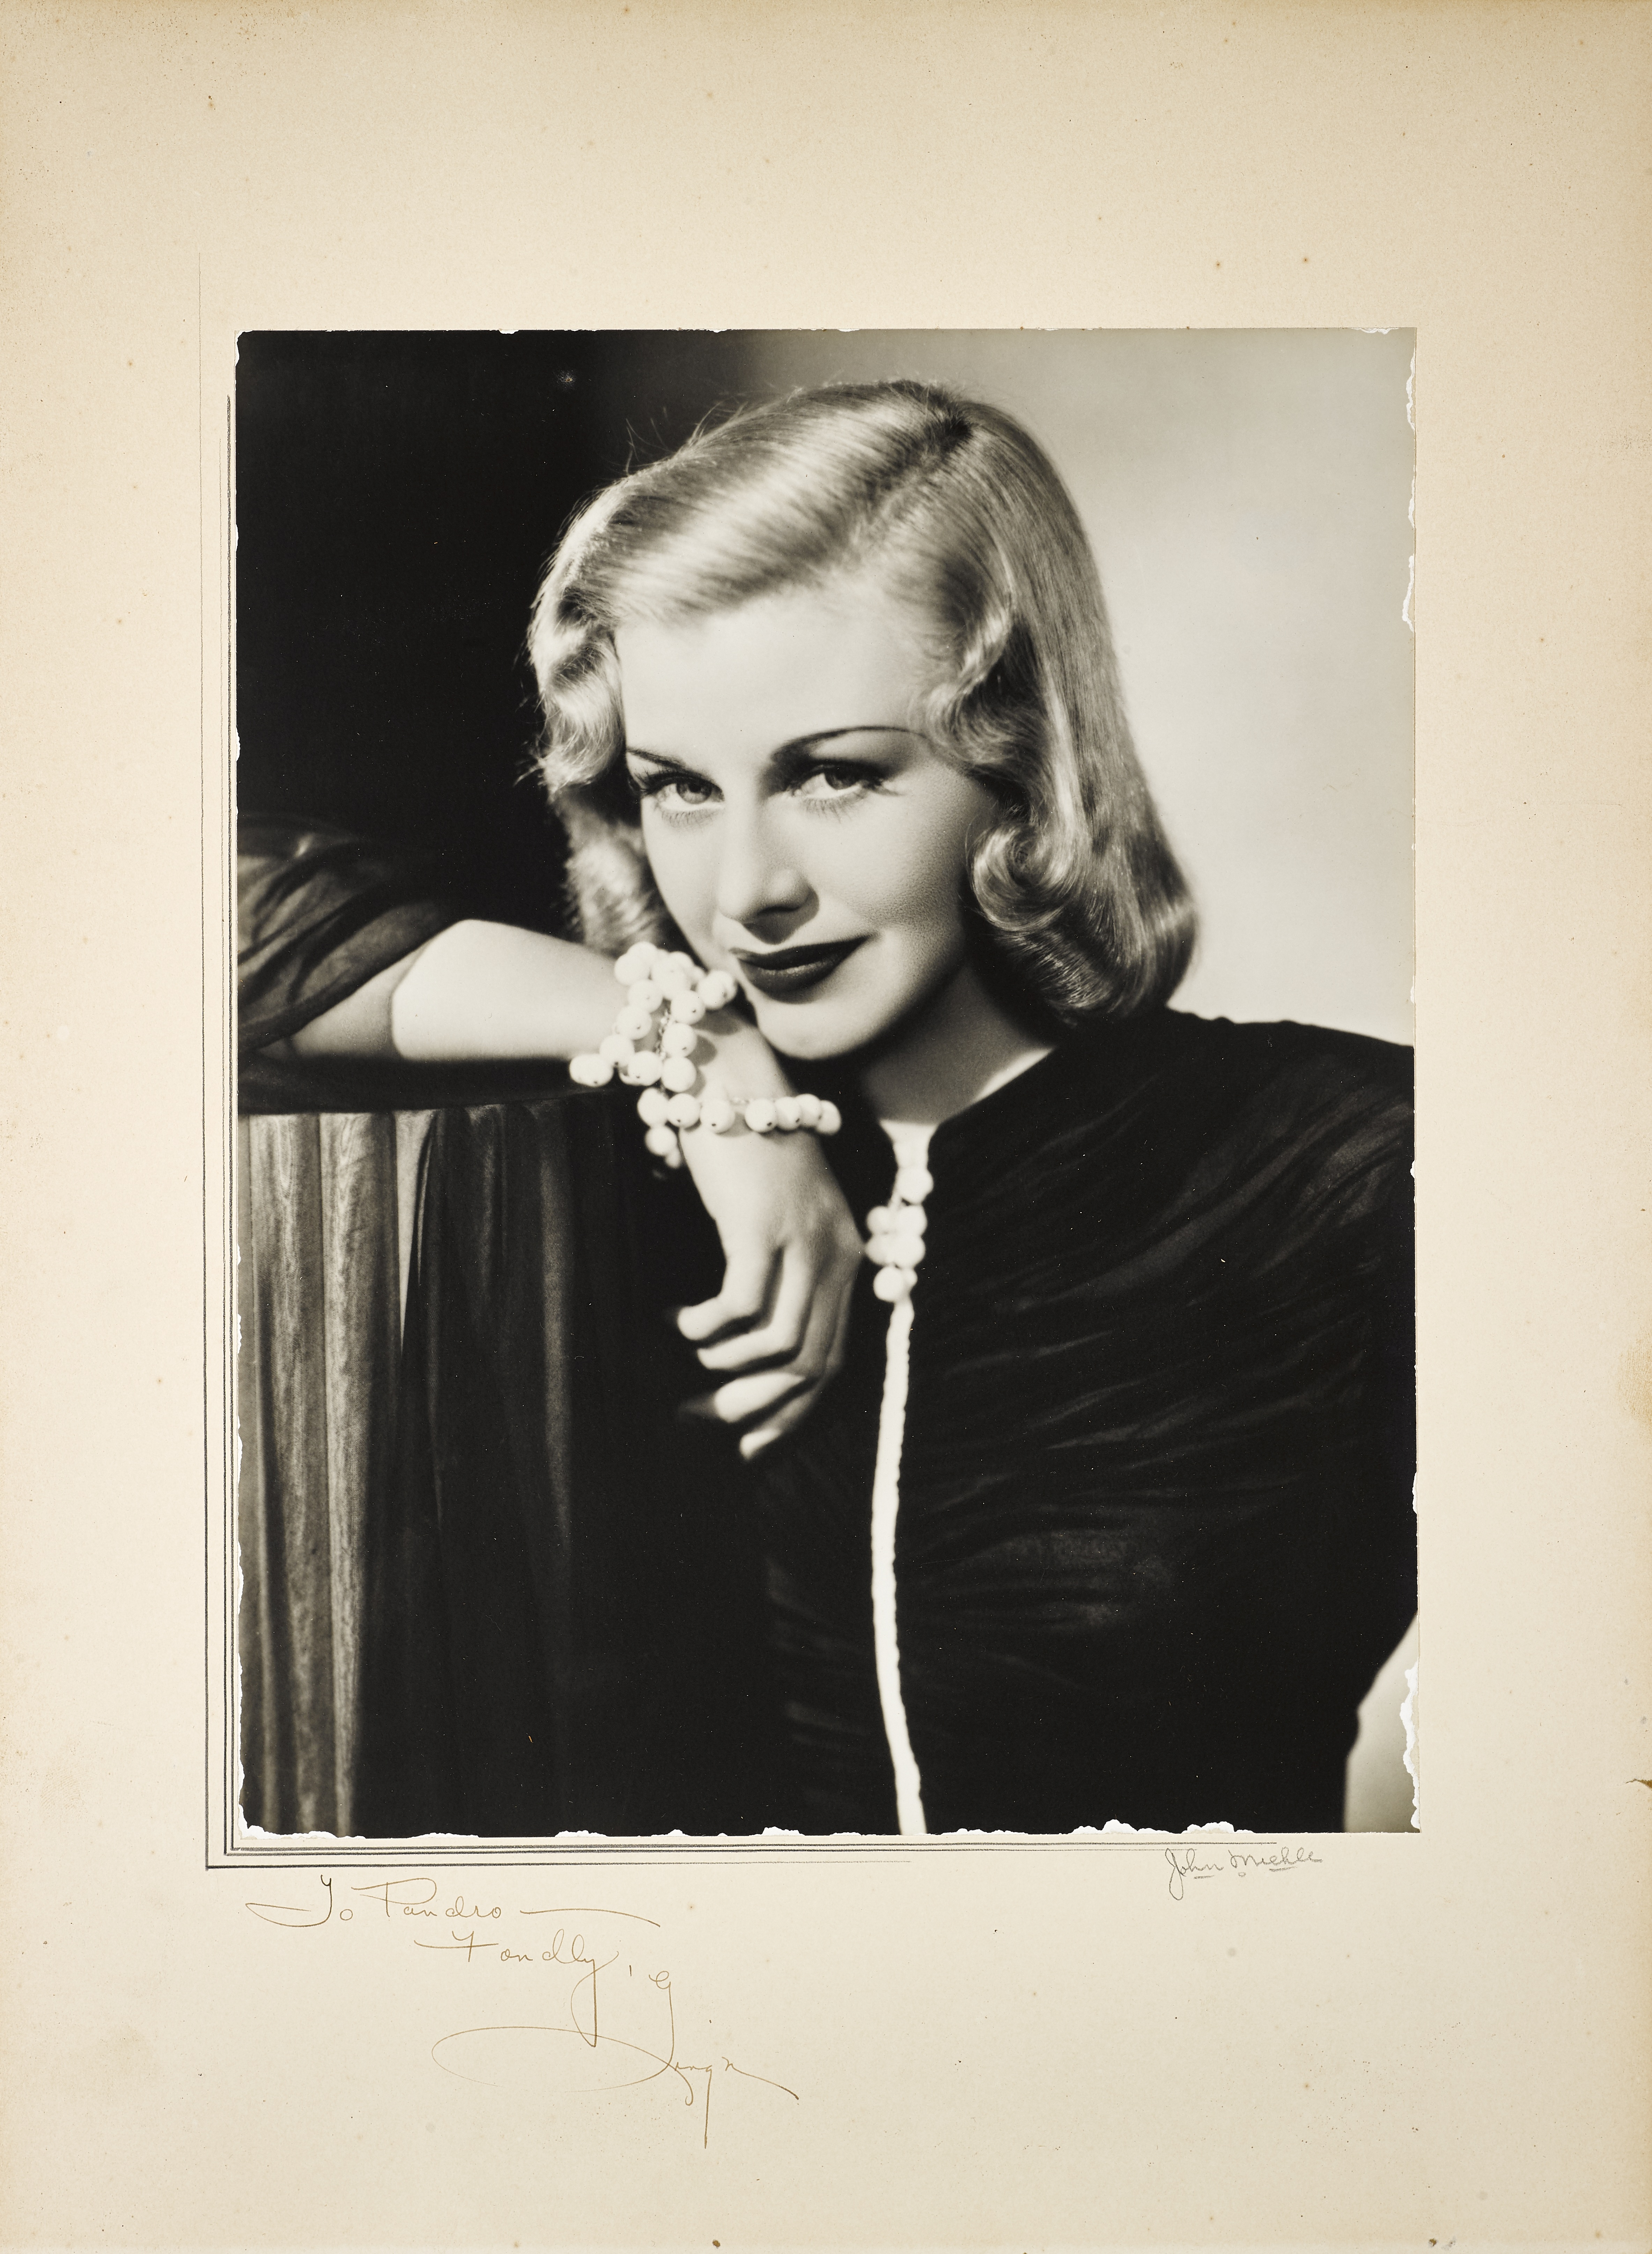 Lot 1004 - A Ginger Rogers signed photo to Pandro Berman